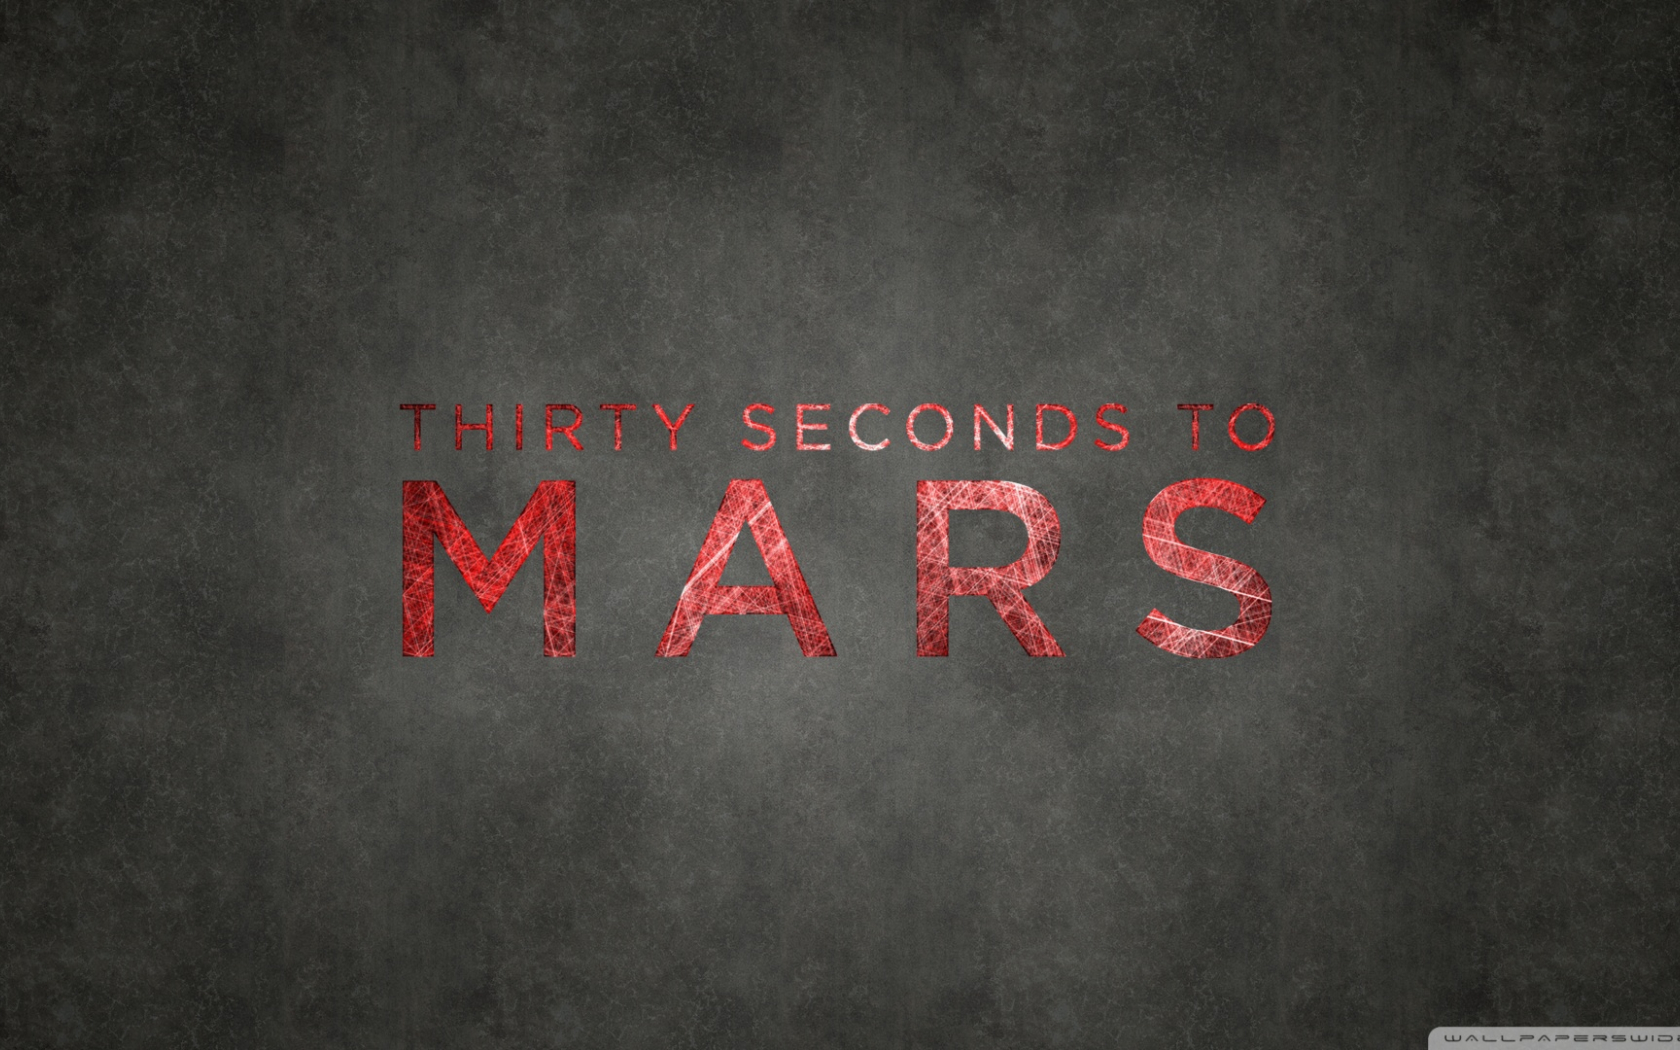 Free Download 30 Seconds To Mars Wallpaper 1920x1080 30 Seconds To